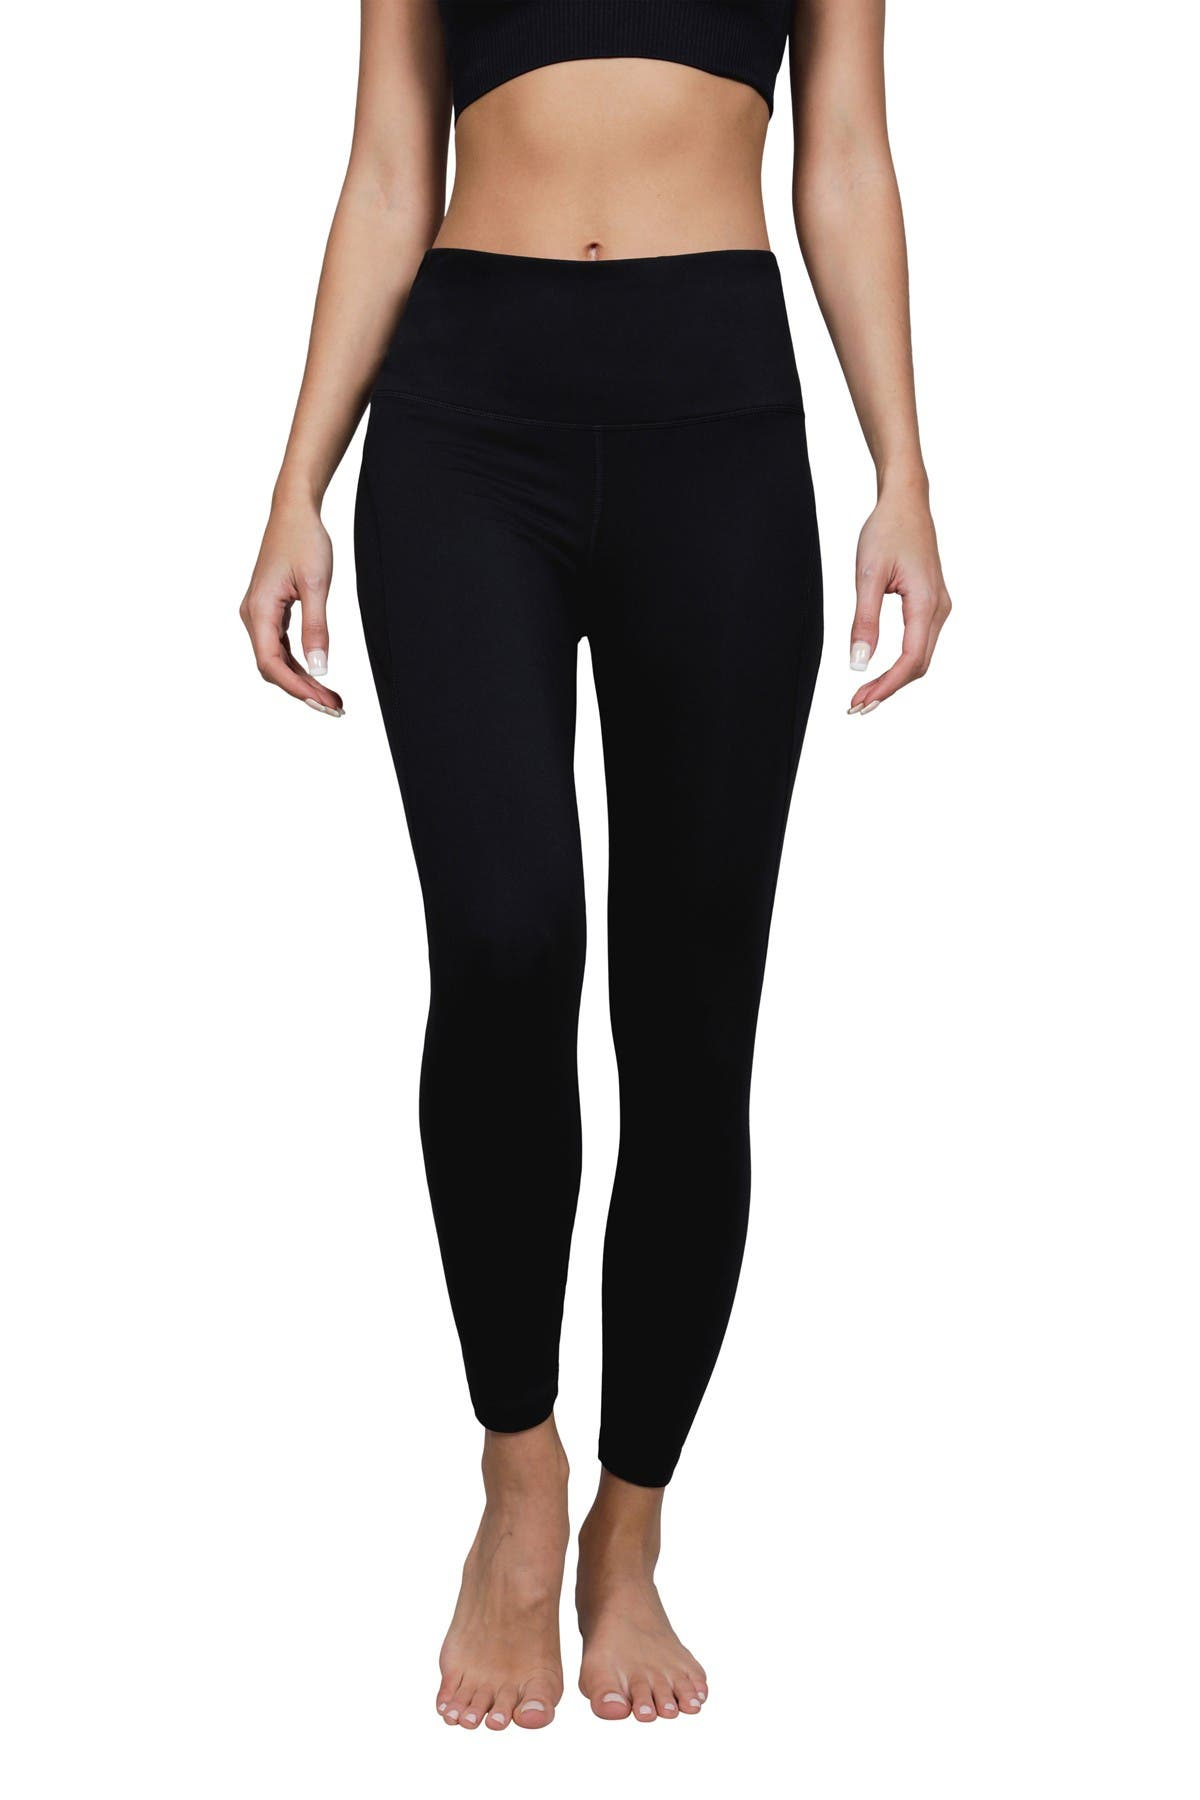 Image of 90 Degree By Reflex Lux High Rise Back Pocket Ankle Leggings